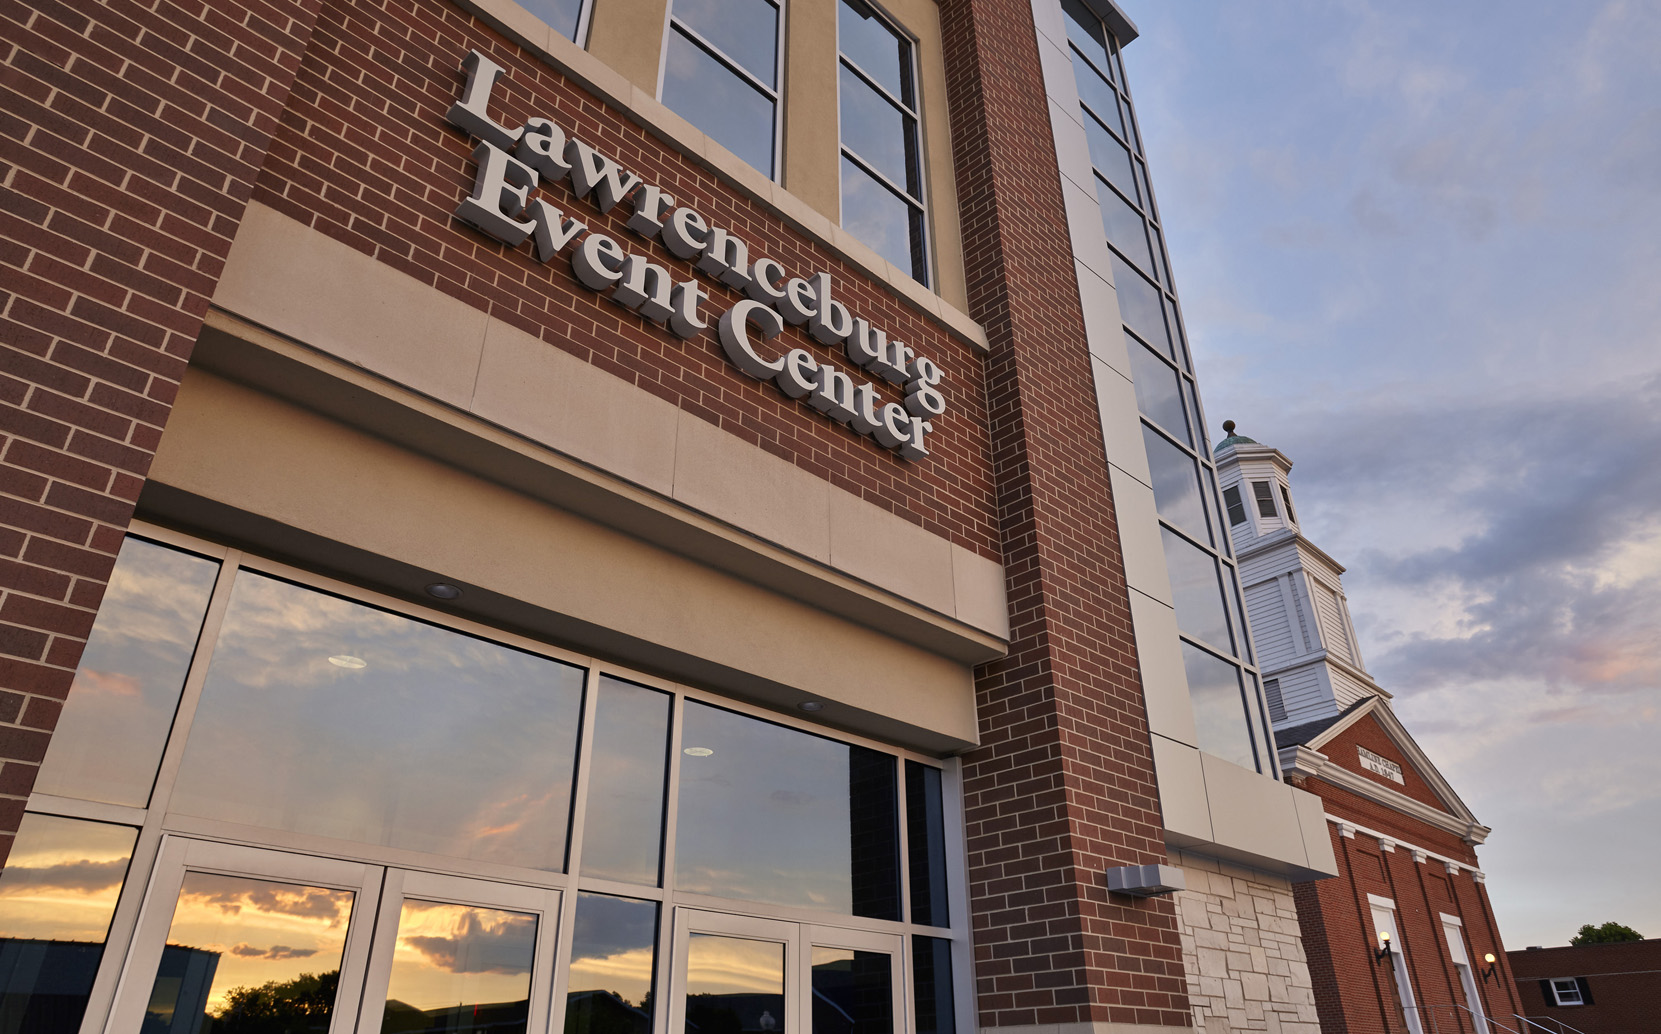 Doubletree Hotel and Lawrenceburg Event Center